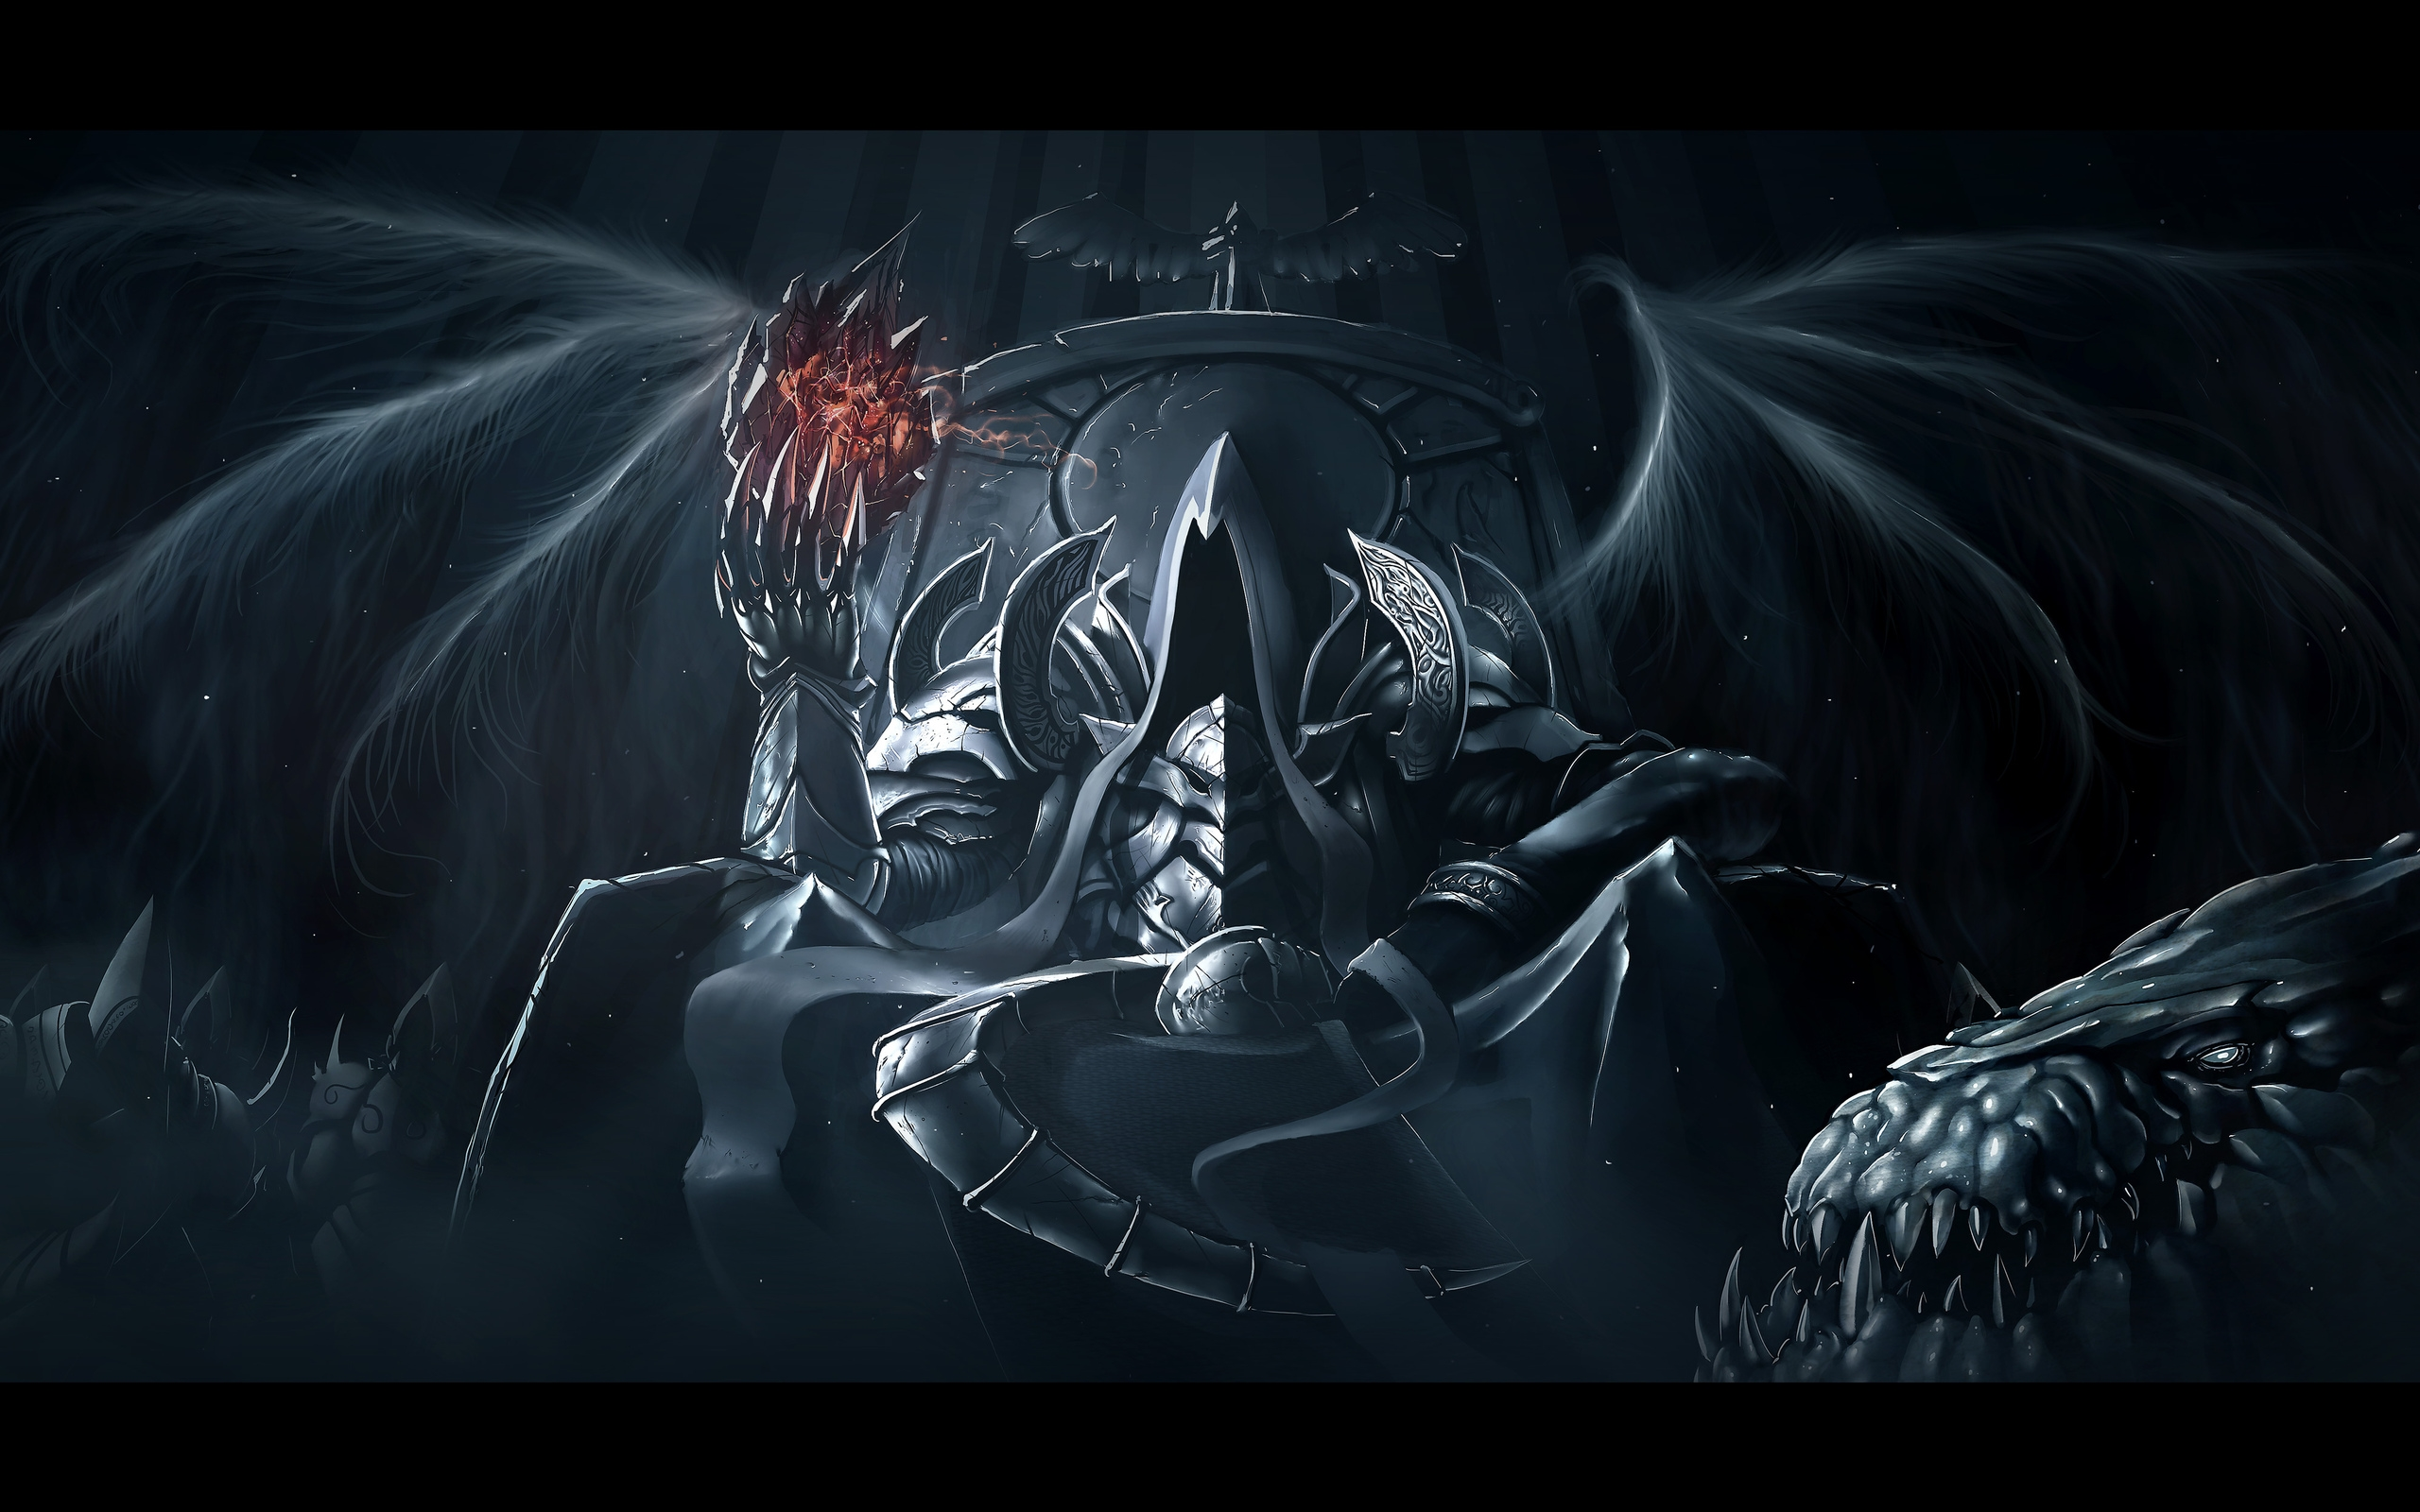 Diablo III: Reaper Of Souls Wallpapers, Pictures, Images